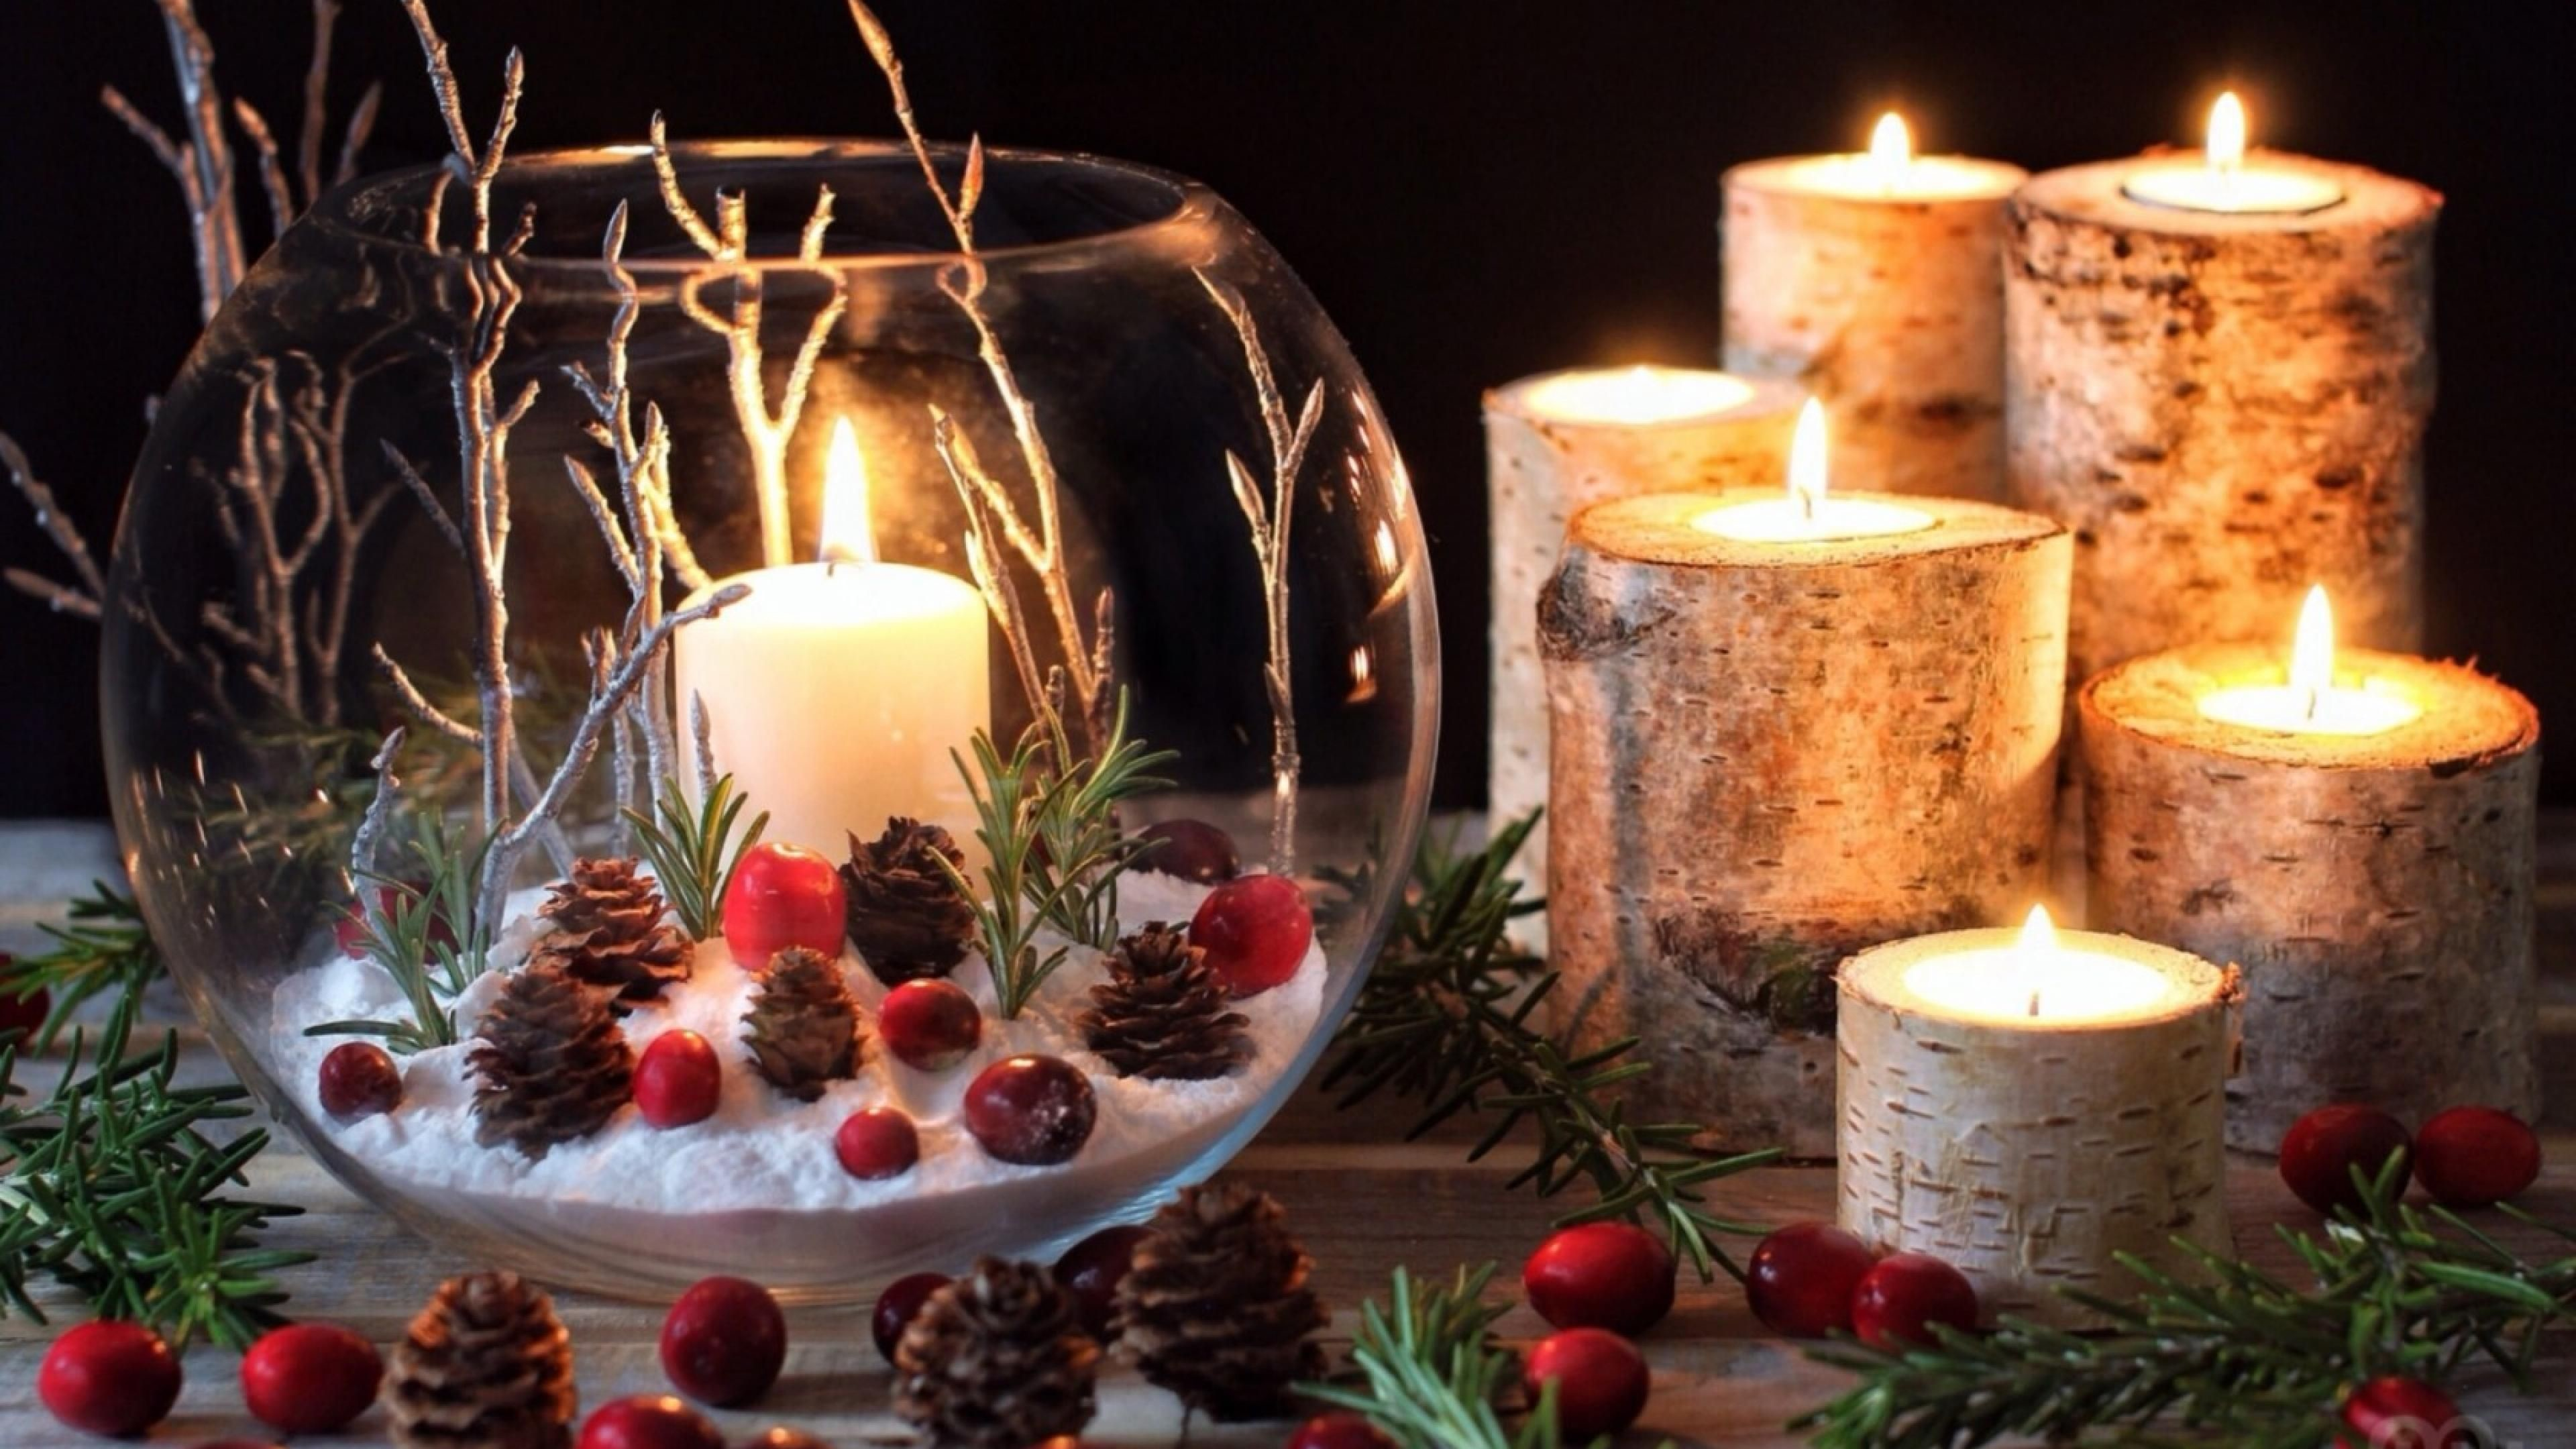 Candles Wallpapers Wallpapers And Backgrounds And For Winter Solstice Yule Background 2917254 Hd Wallpaper Backgrounds Download